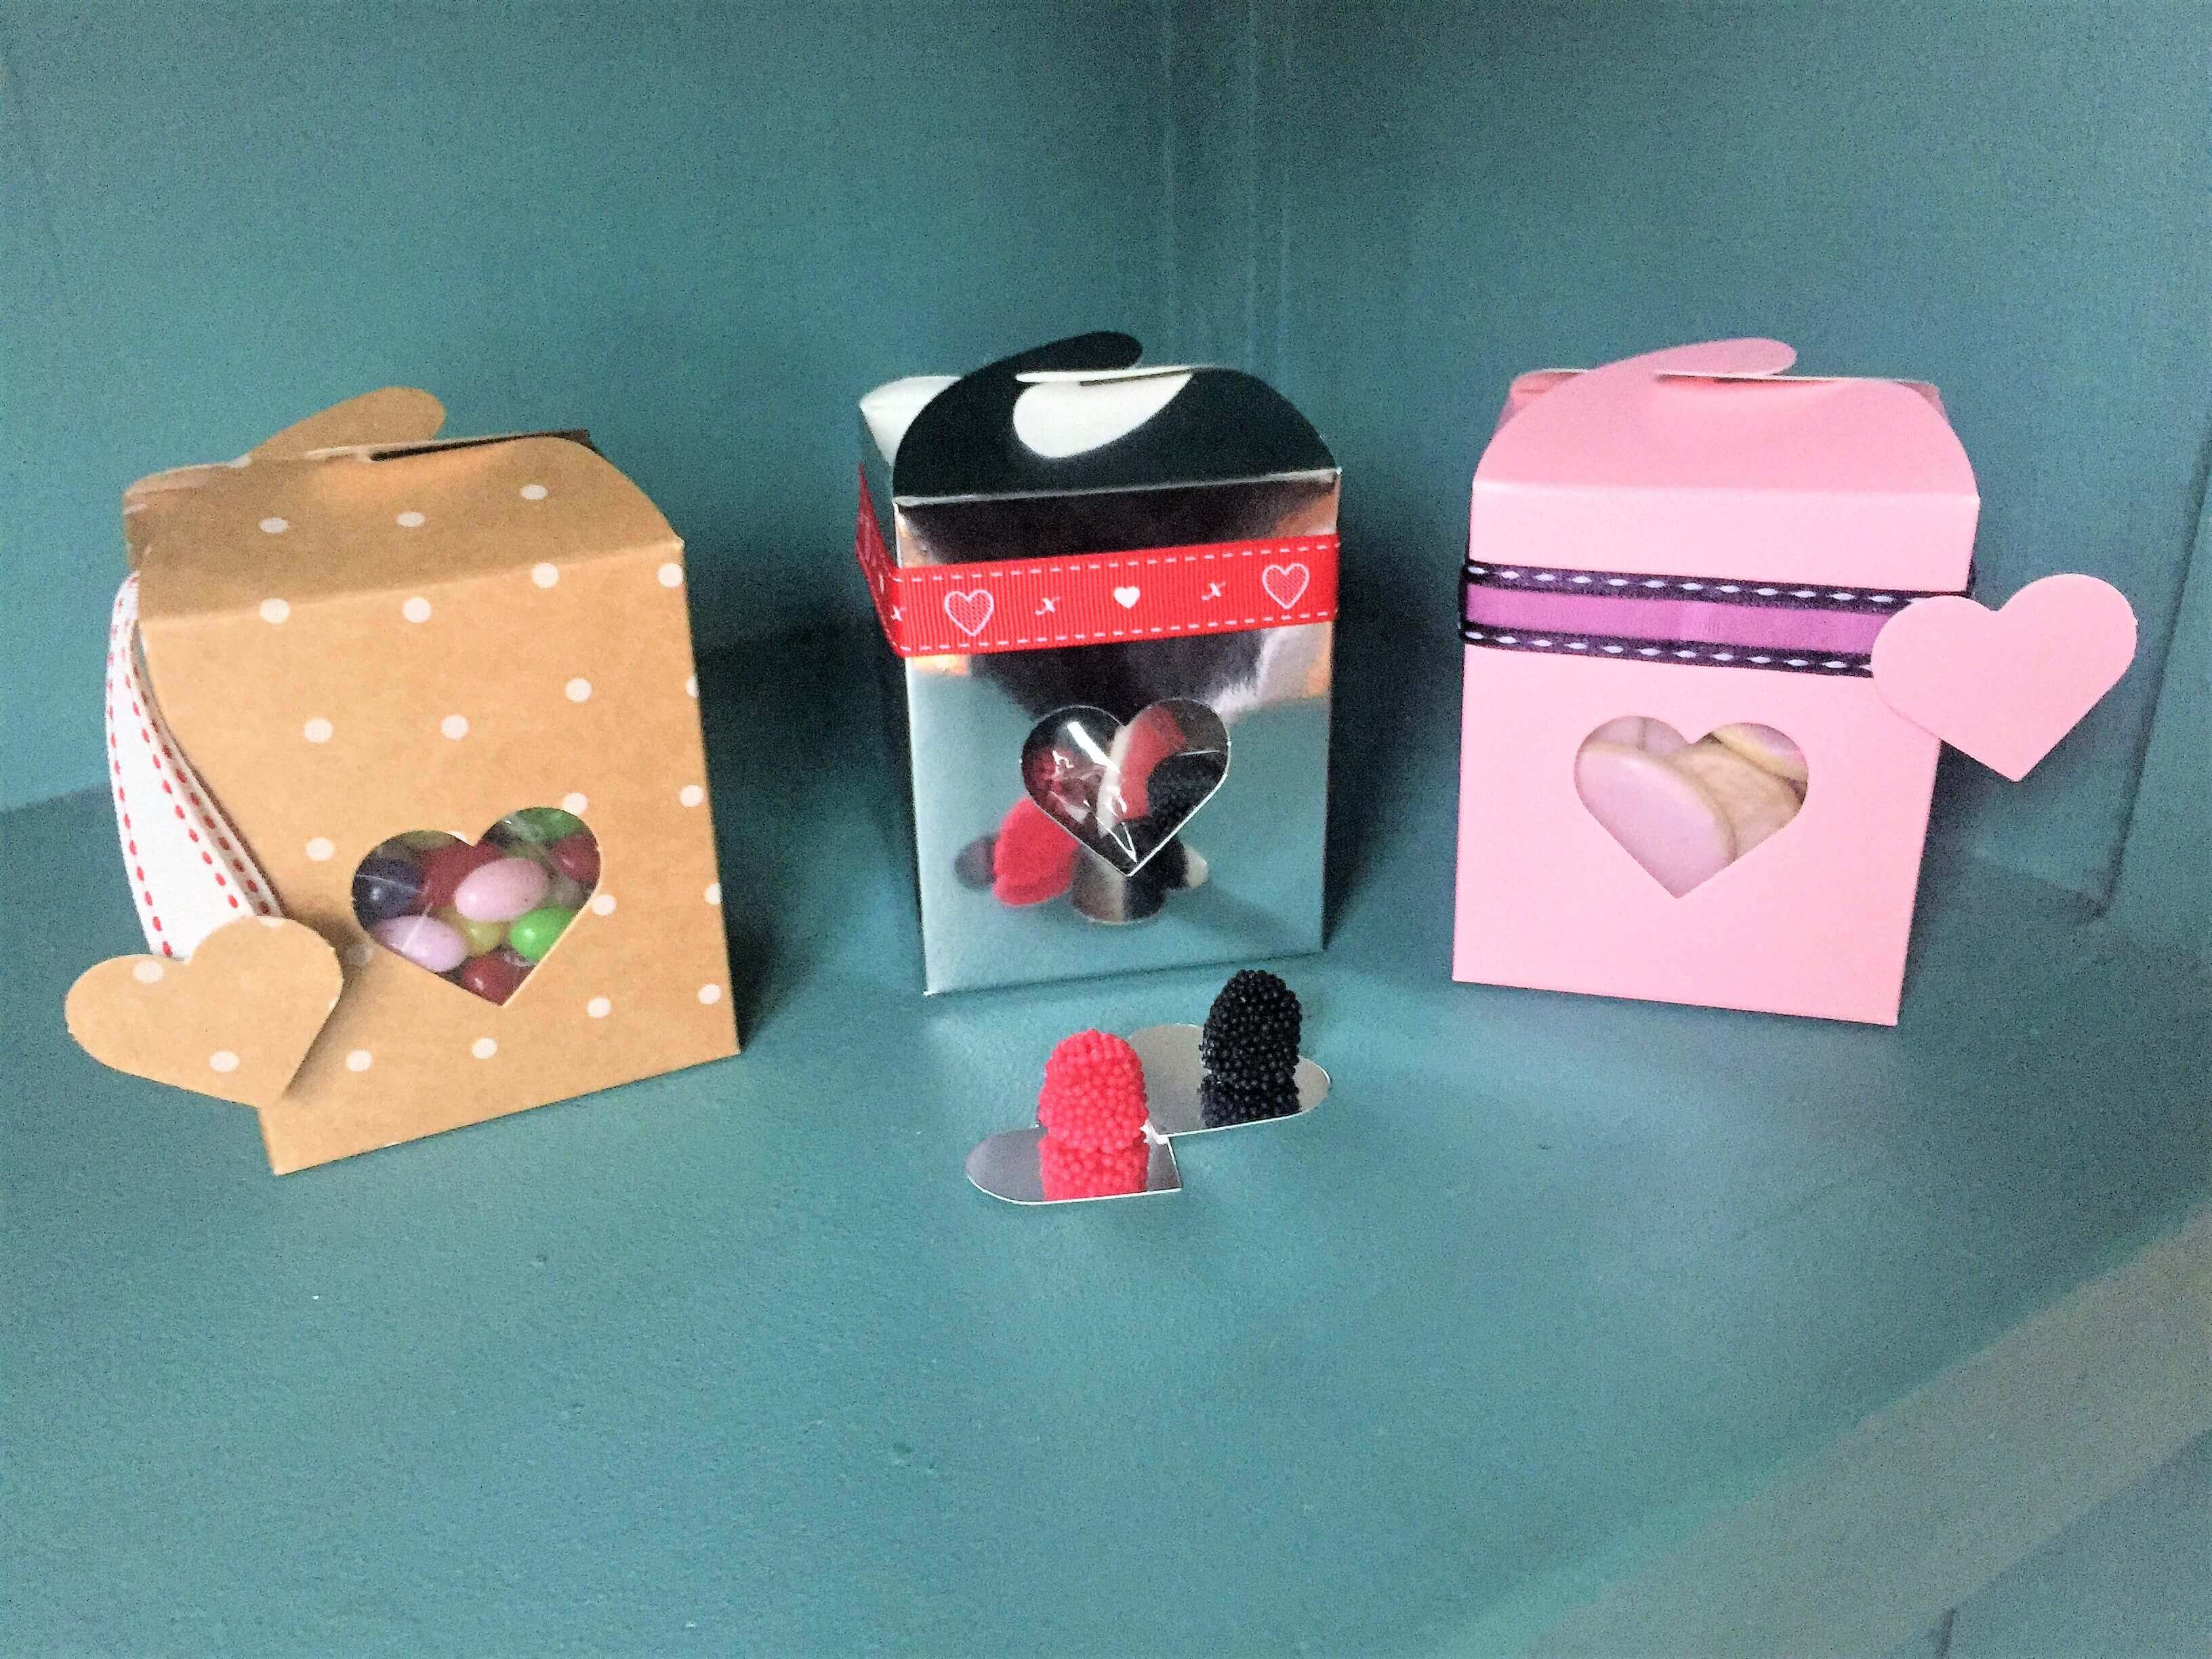 Heart Windowed Truffle/ Fudge Box with interlocking top